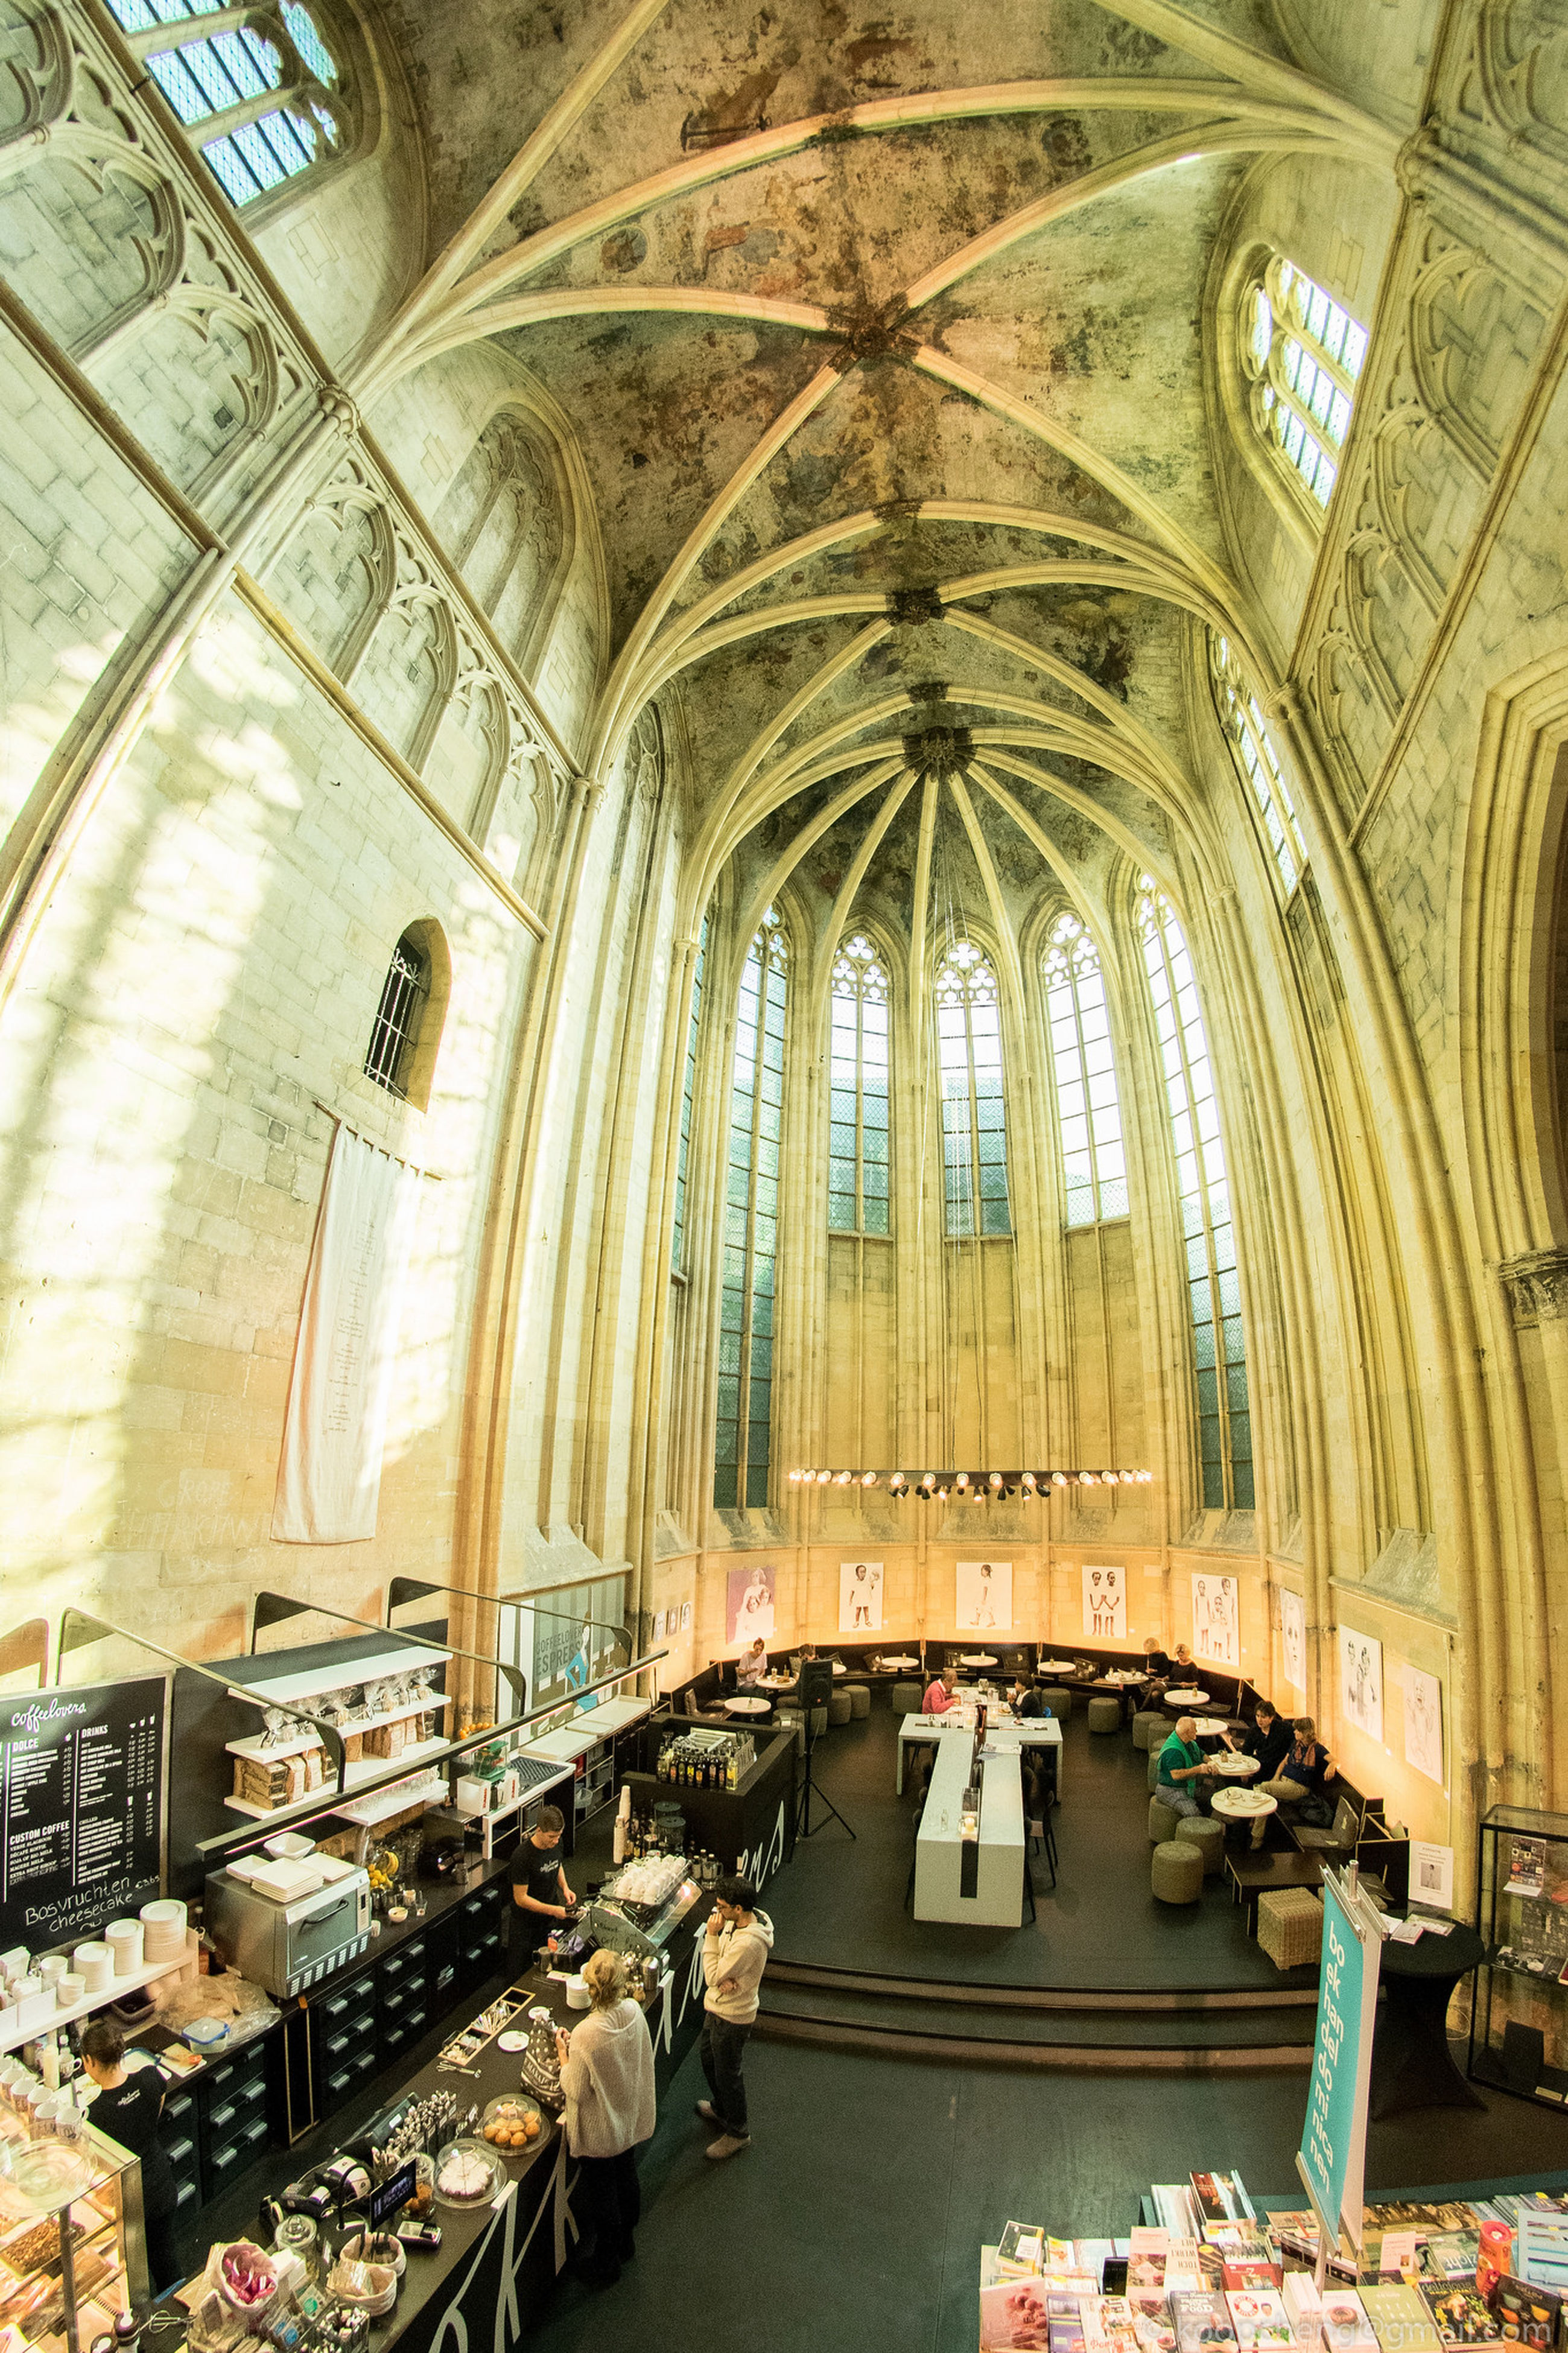 indoors, architecture, built structure, arch, ceiling, interior, transportation, public transportation, place of worship, railroad station, rail transportation, travel, incidental people, church, window, day, building exterior, religion, spirituality